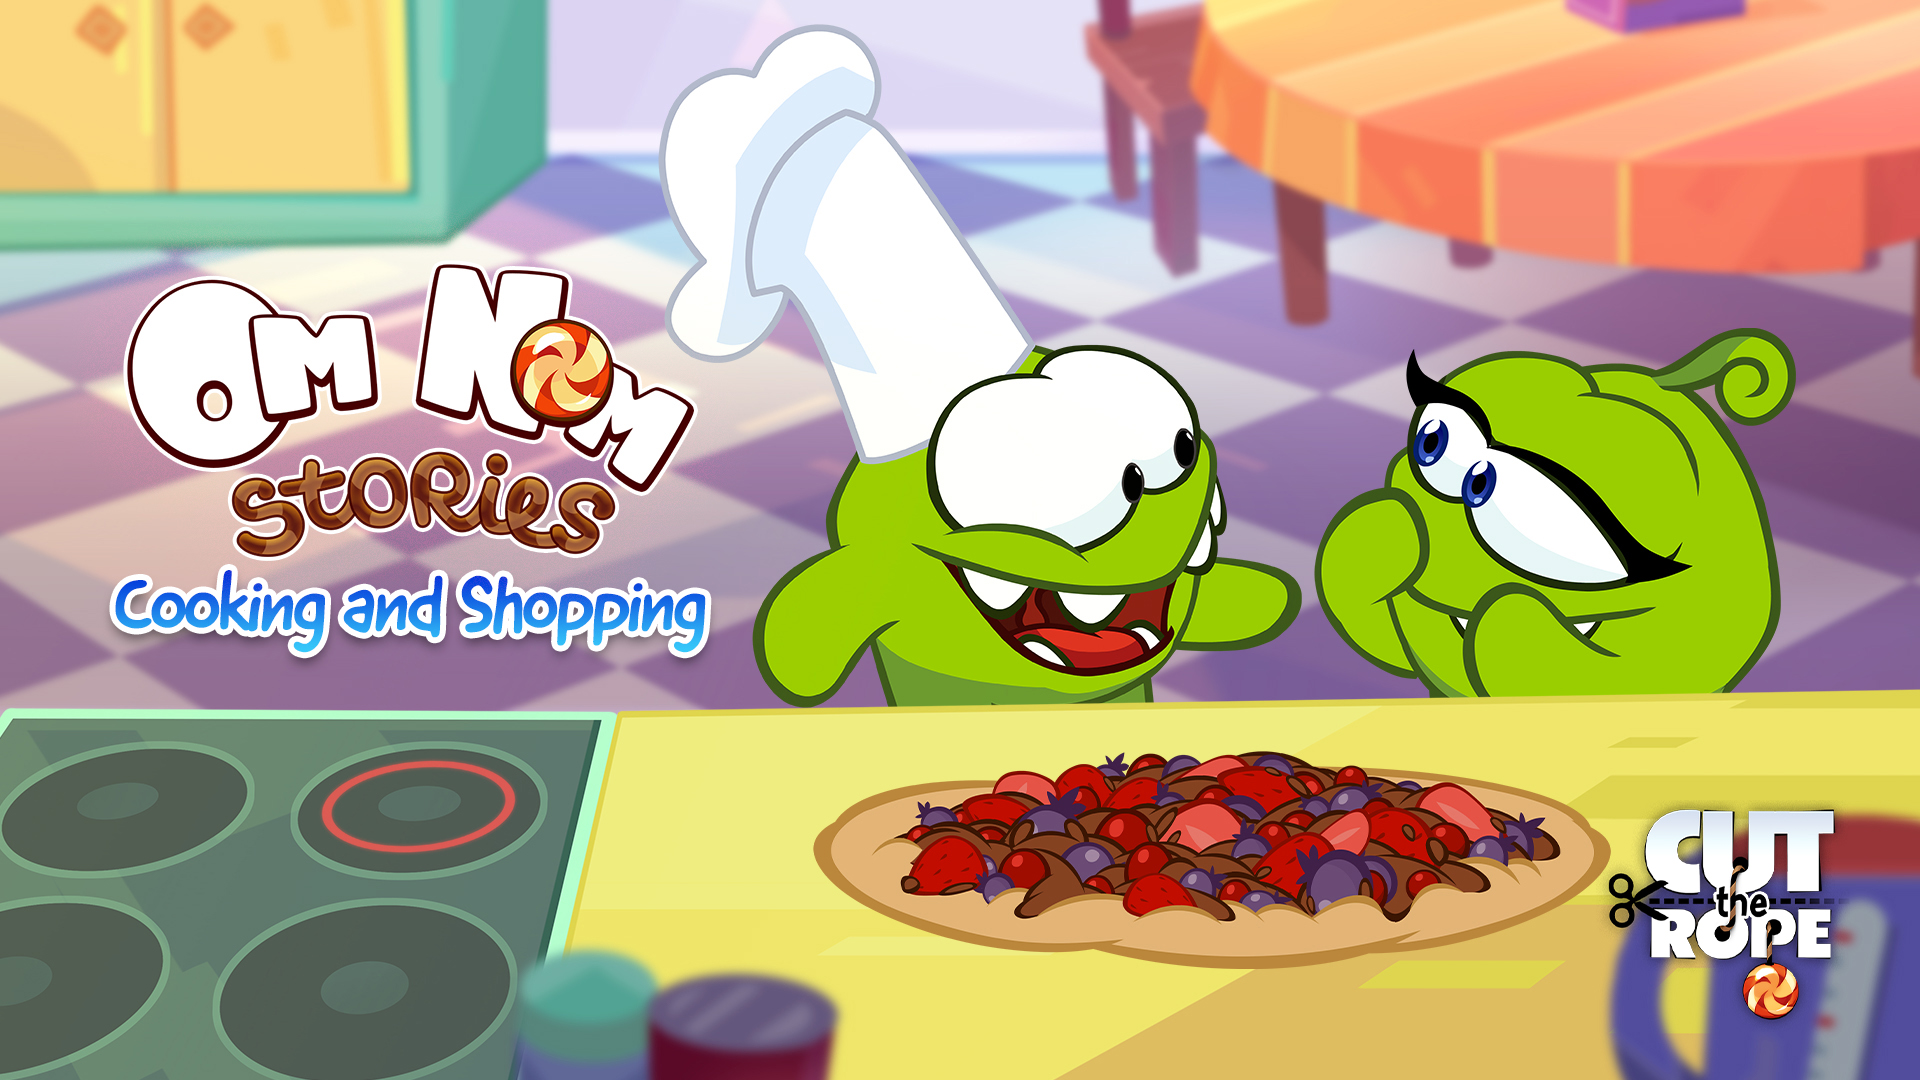 Cut The Rope: Om Nom Stories - Cooking and Shopping